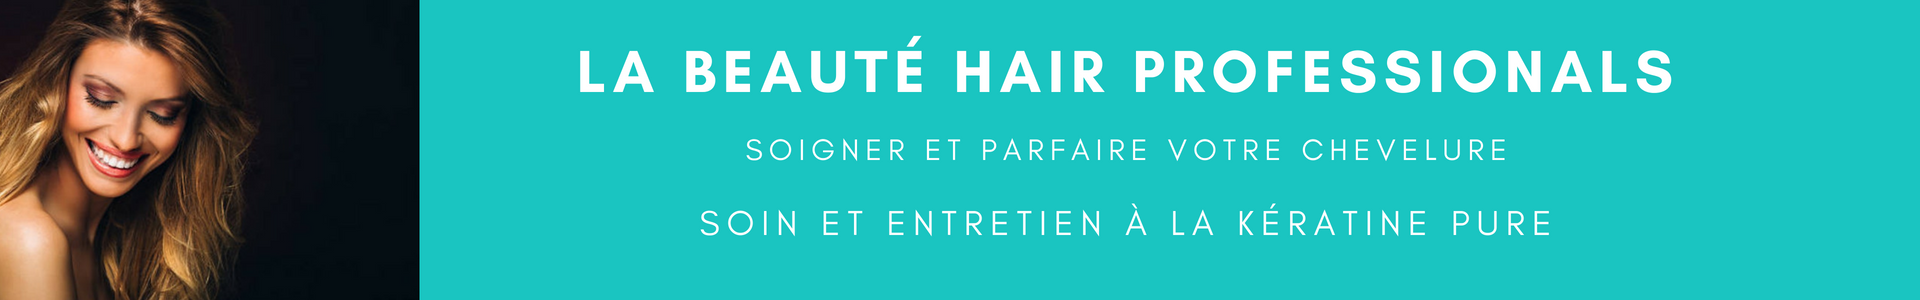 la beauté hair professionals distributeur officiel hairstyleshop